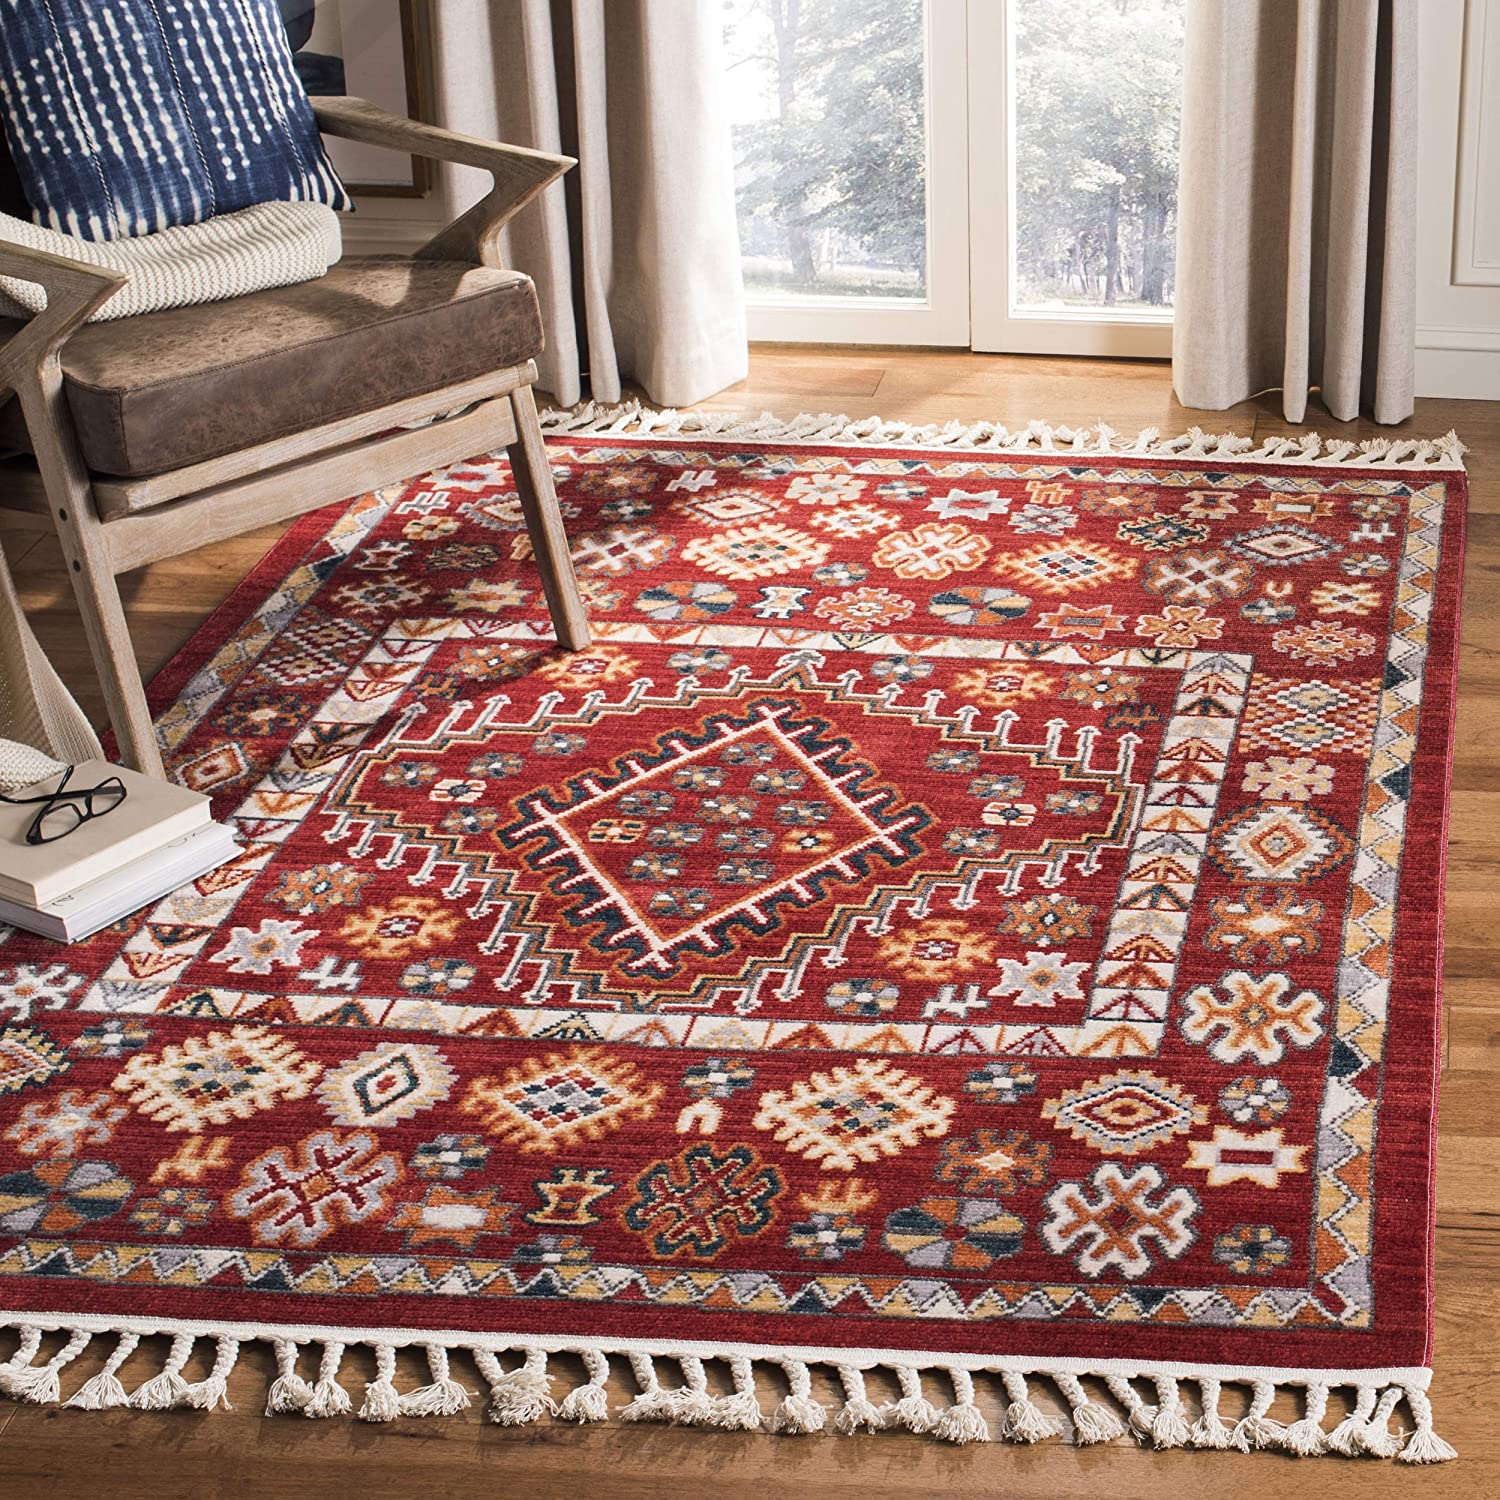 Safavieh Farmhouse Collection New York Mall FMH814Q Boho Challenge the lowest price of Japan Moroccan Tassel Area